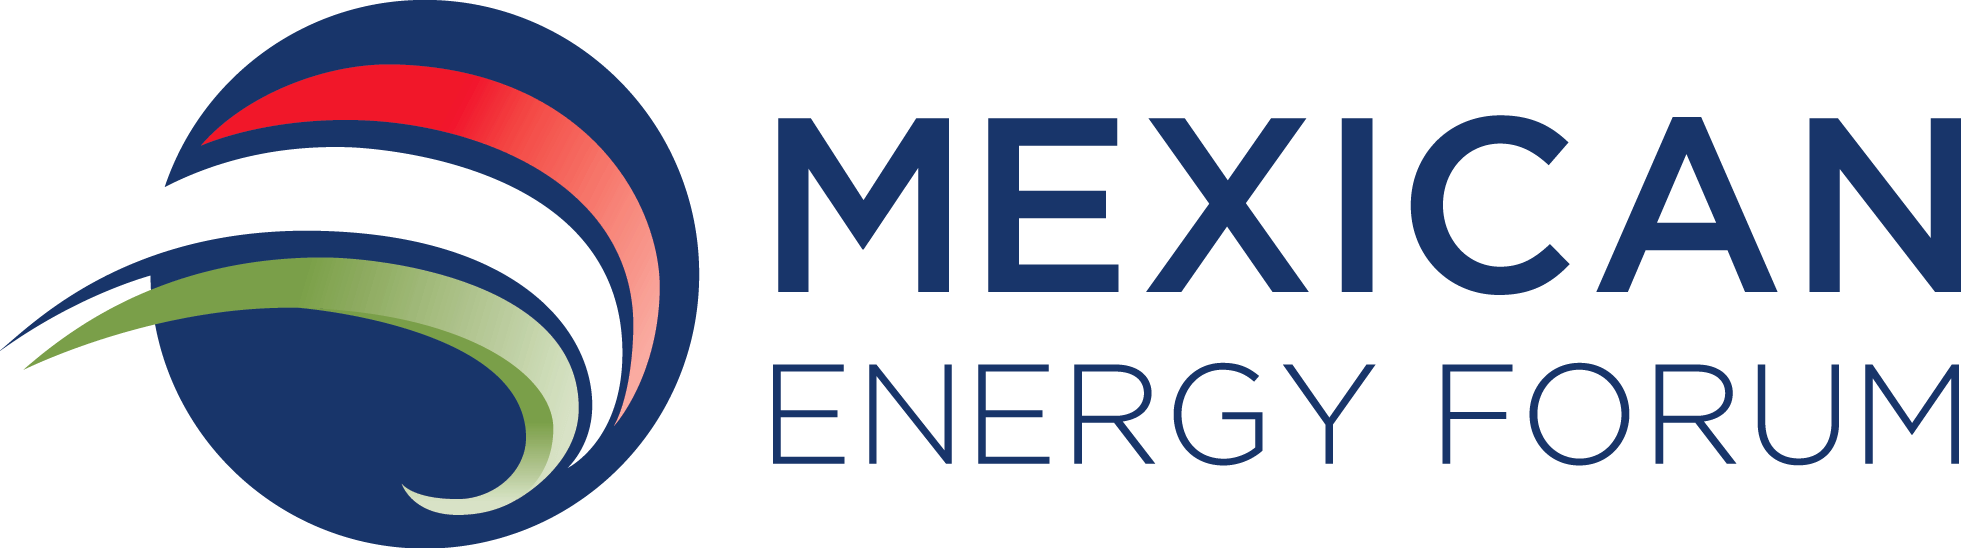 Mexican Energy Forum